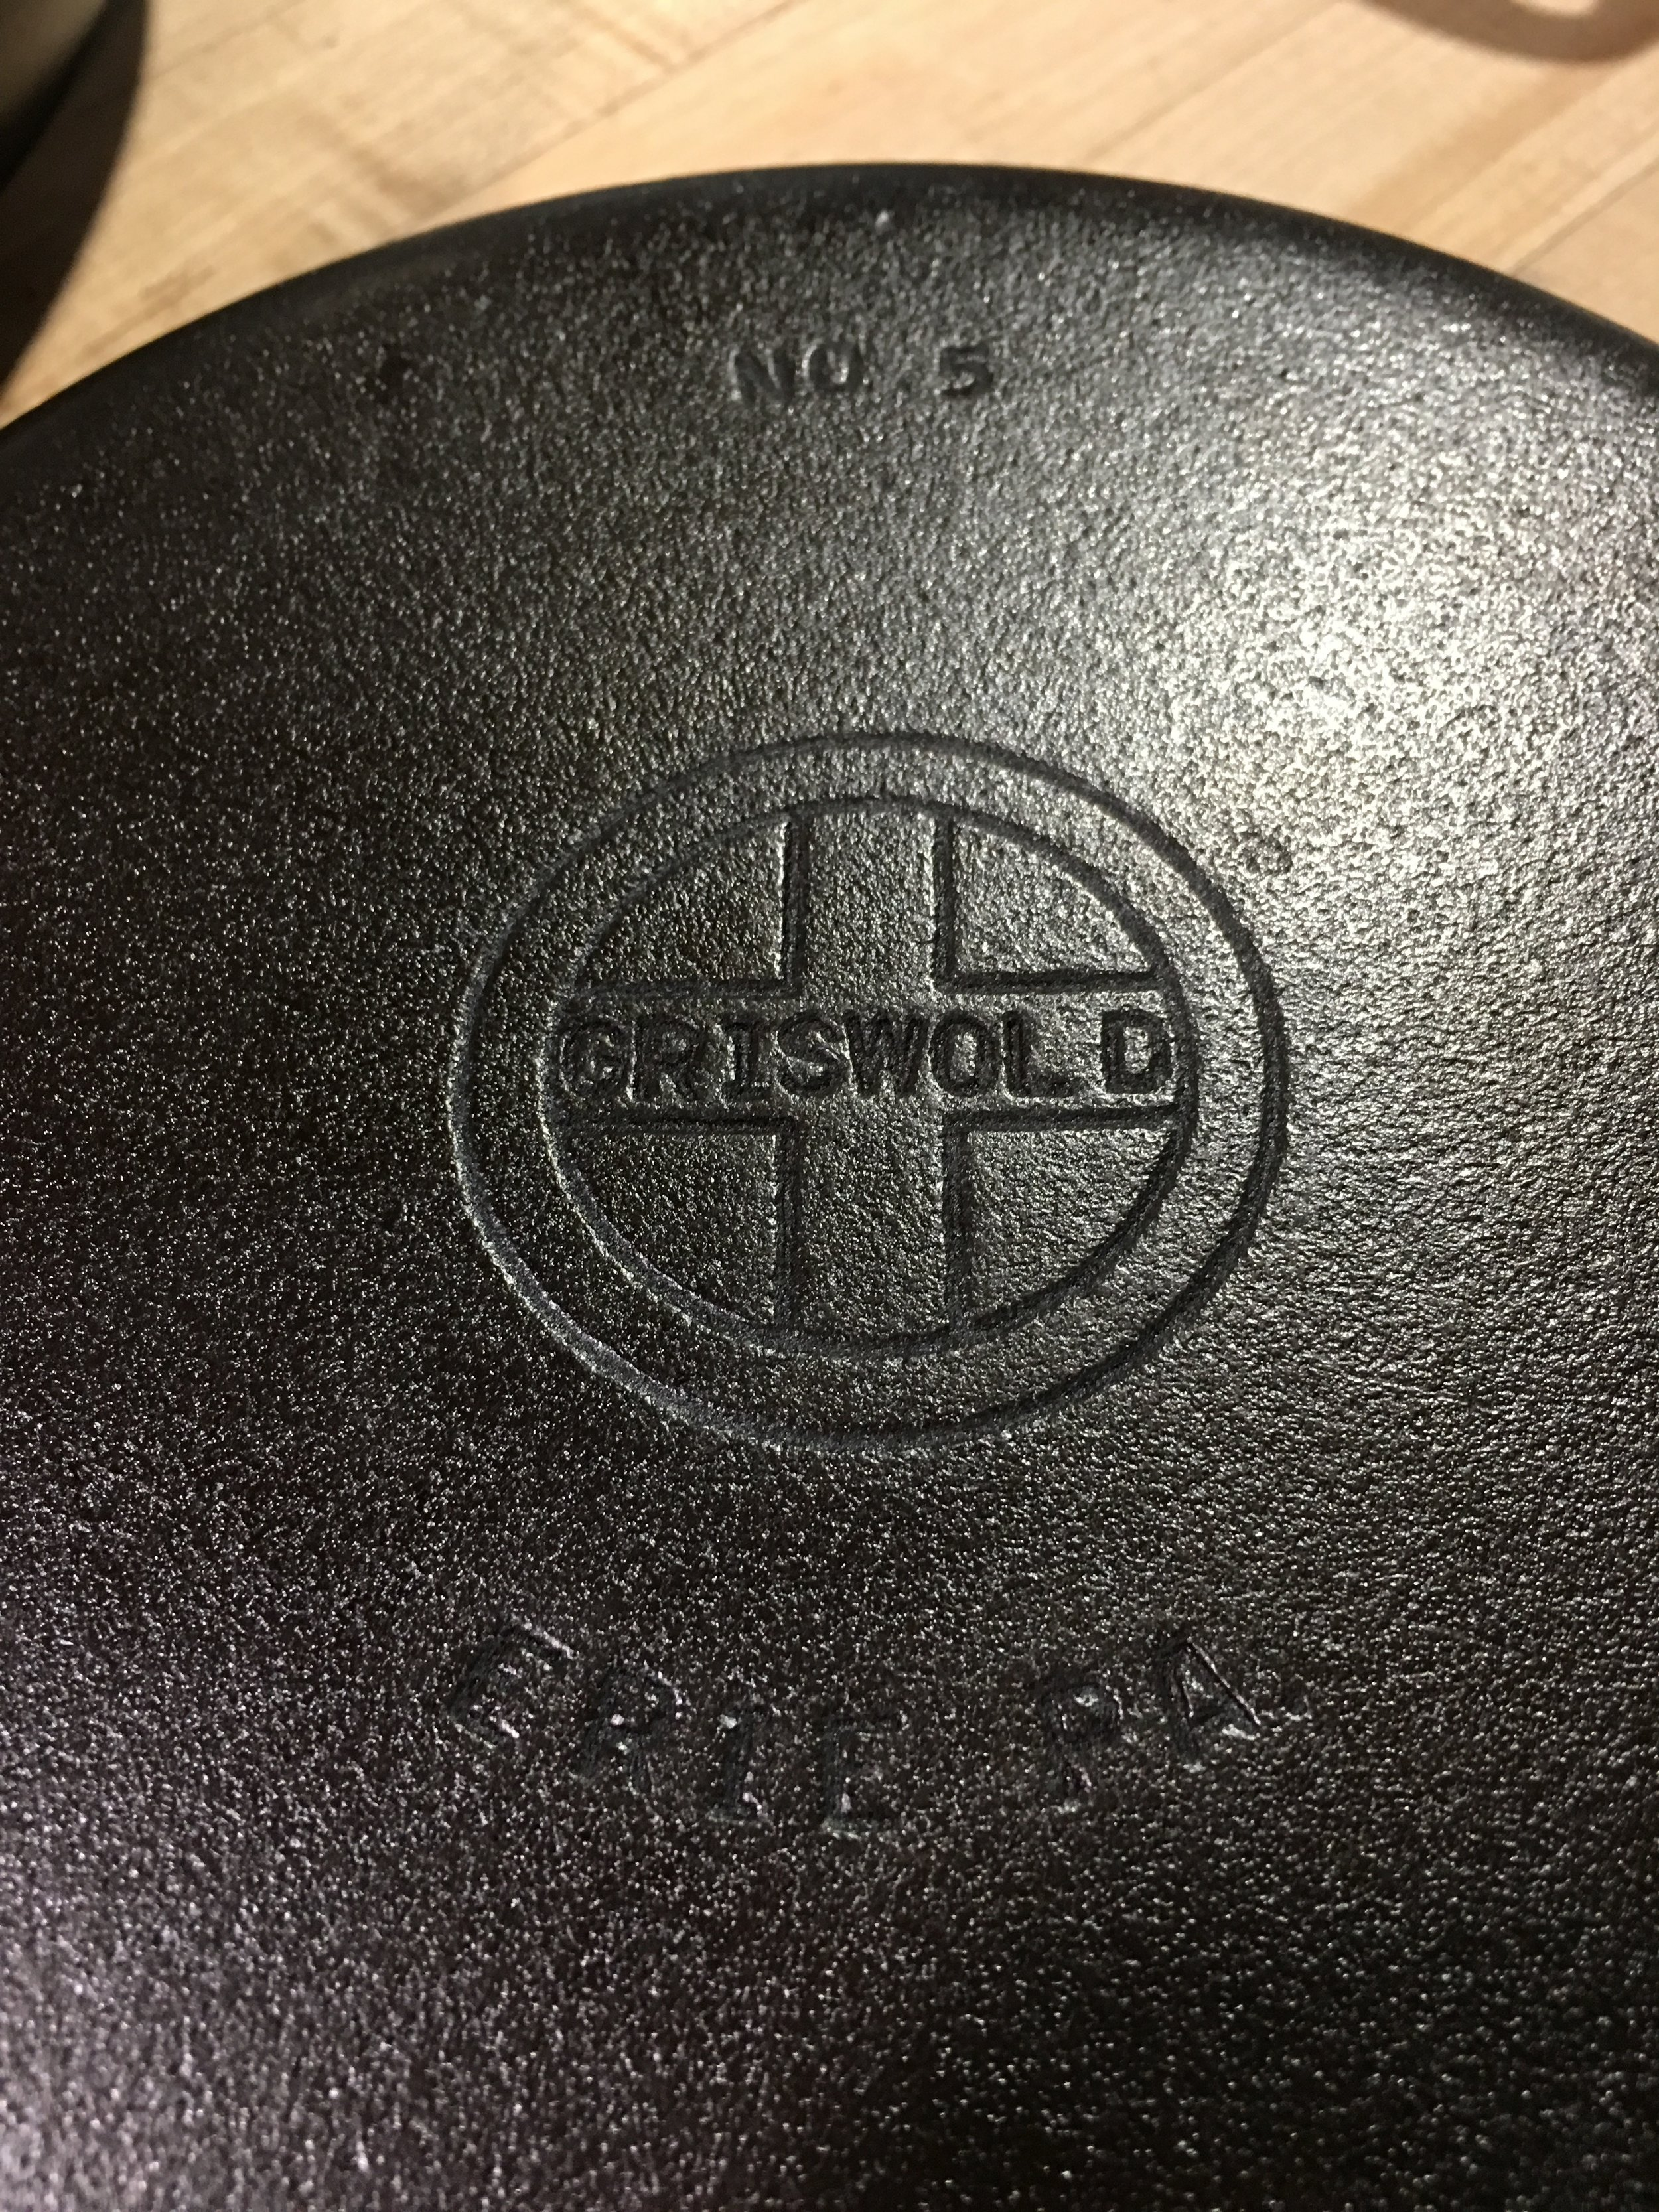 Griswold markings on cast iron - an original